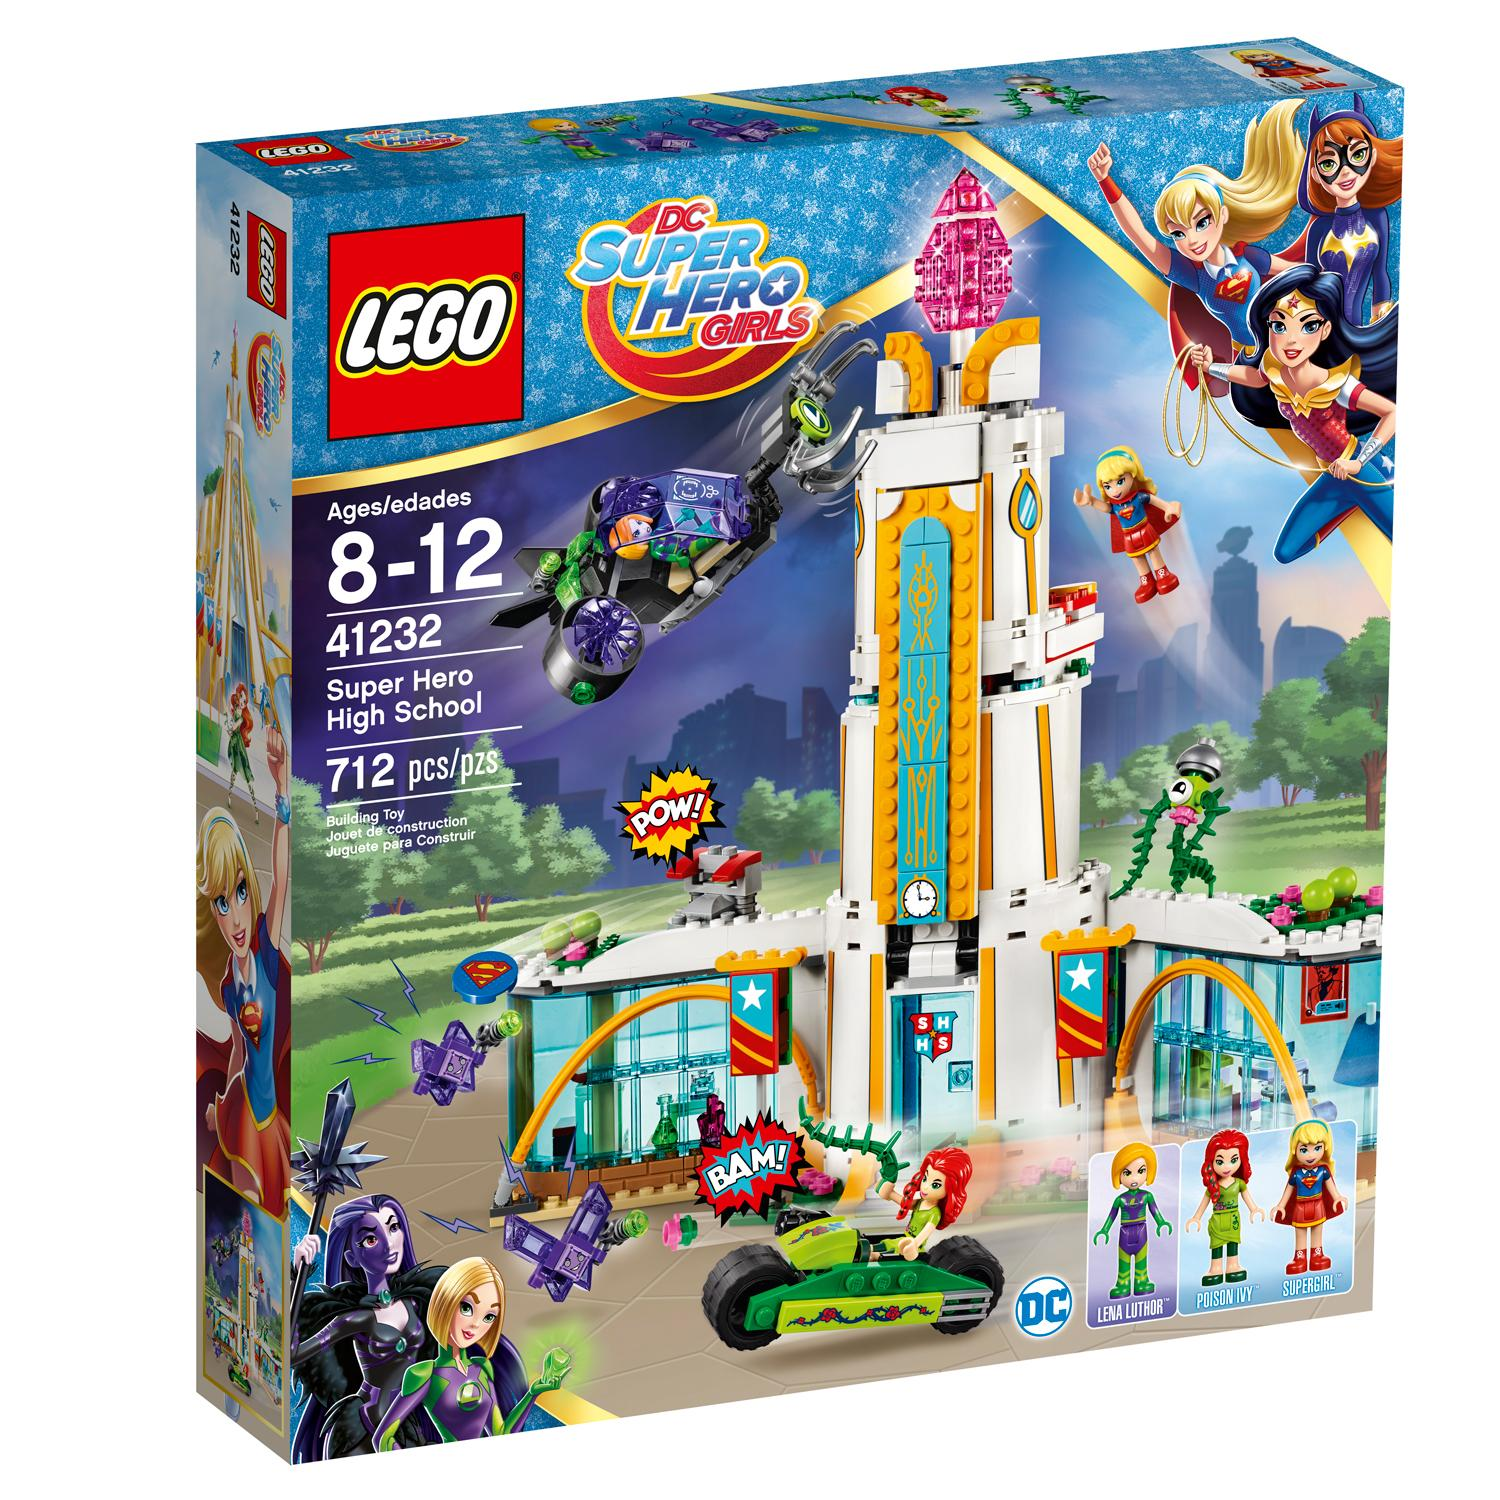 Lego Toys For Girls : Amazon lego dc super hero girls high